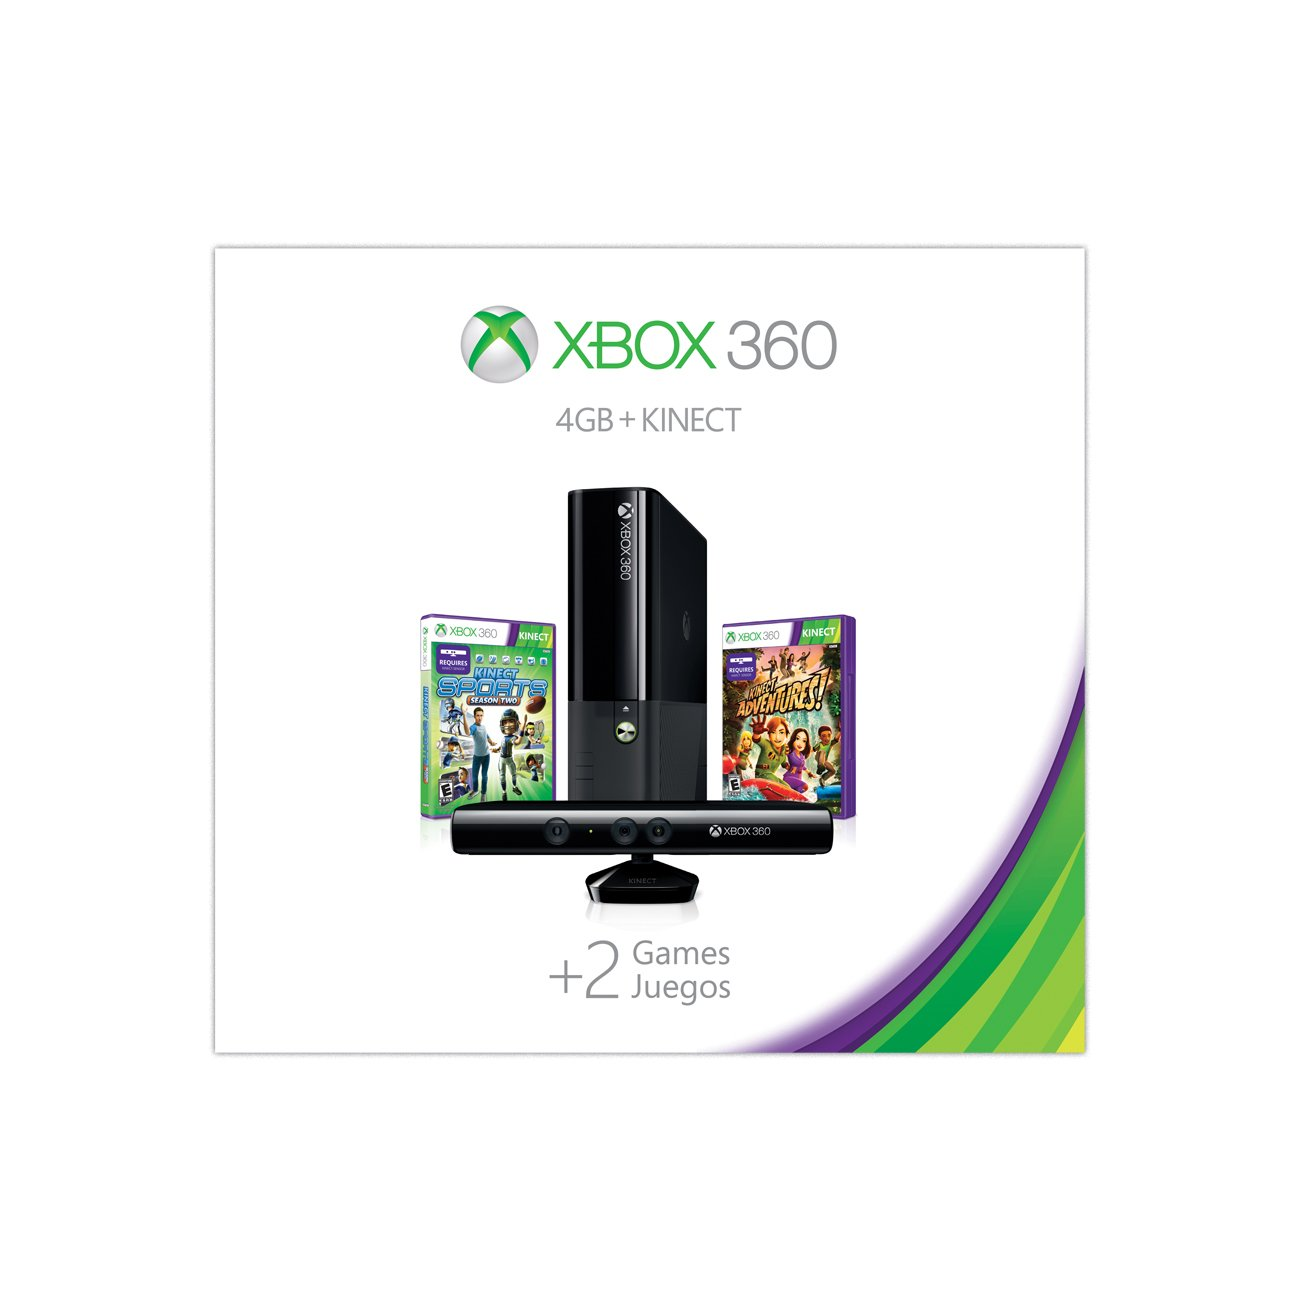 XBOX 360 One on Sale